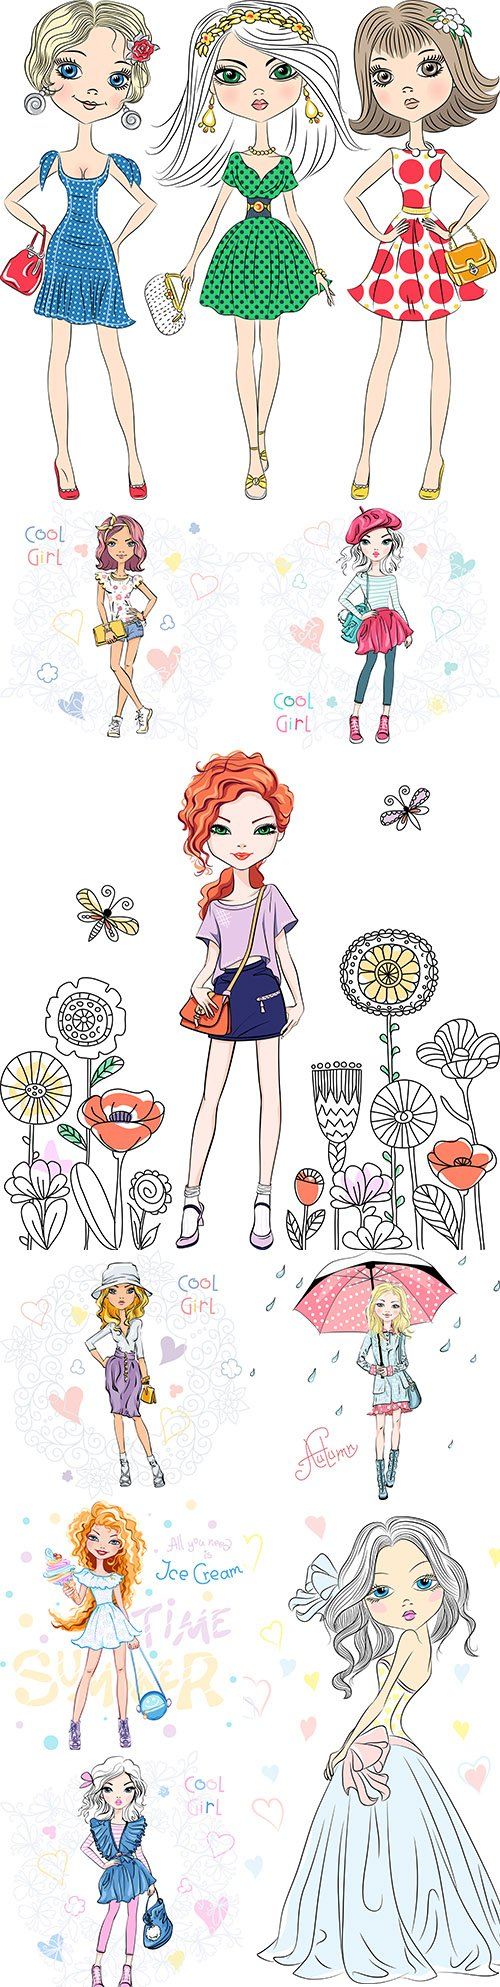 Fashion girl in different stylish clothes with accessories